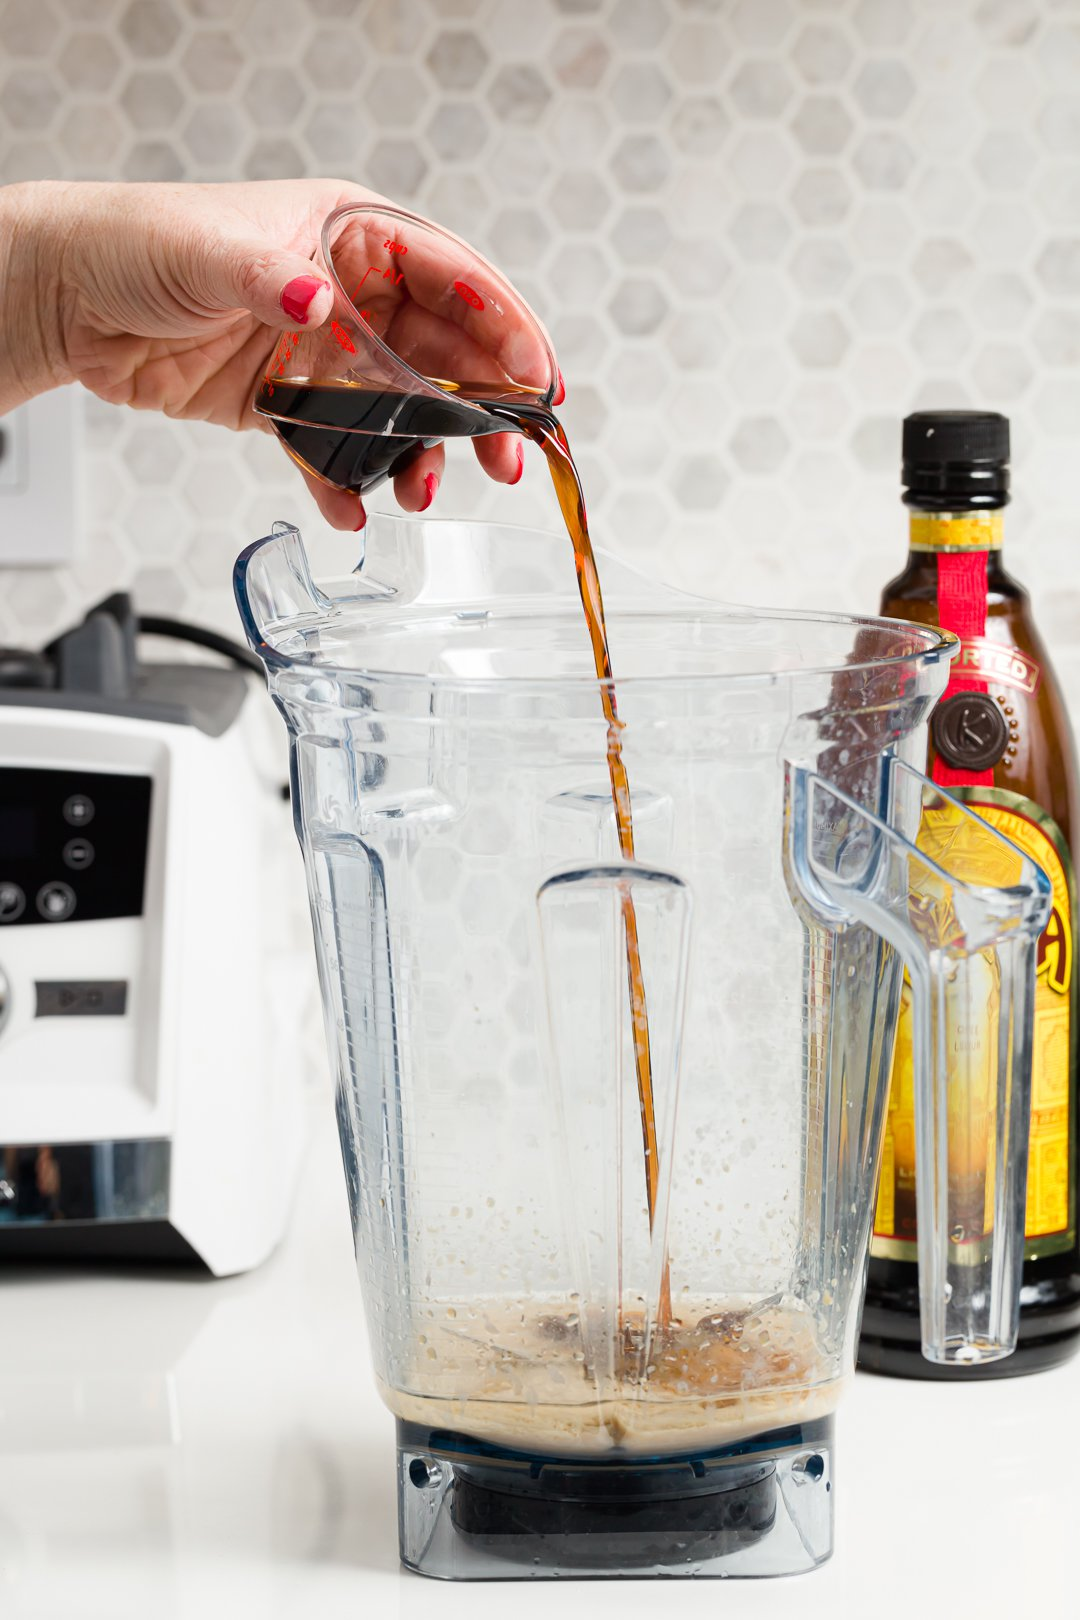 Stef pouring Kahlua into a blender to make a frozen mudslide cocktail